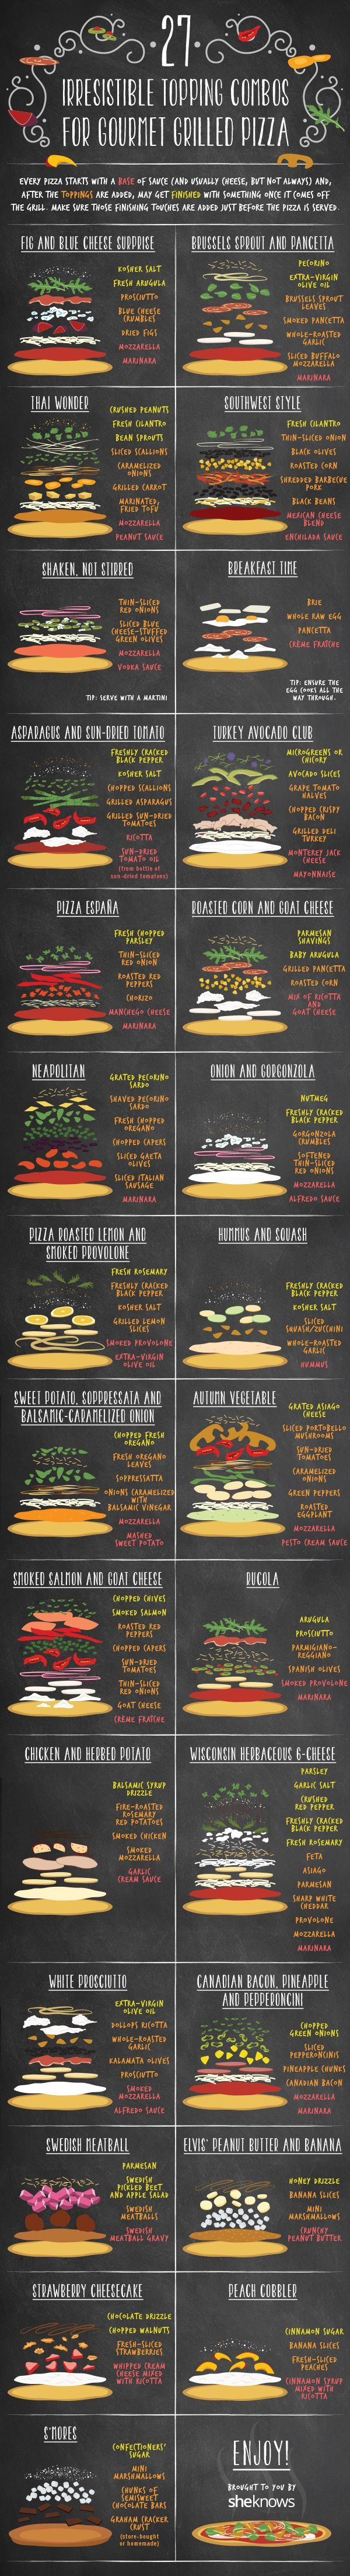 27 Irresistible topping combos for the best grilled pizza (INFOGRAPHIC) - Illustrations and design made for http://SheKnows.com